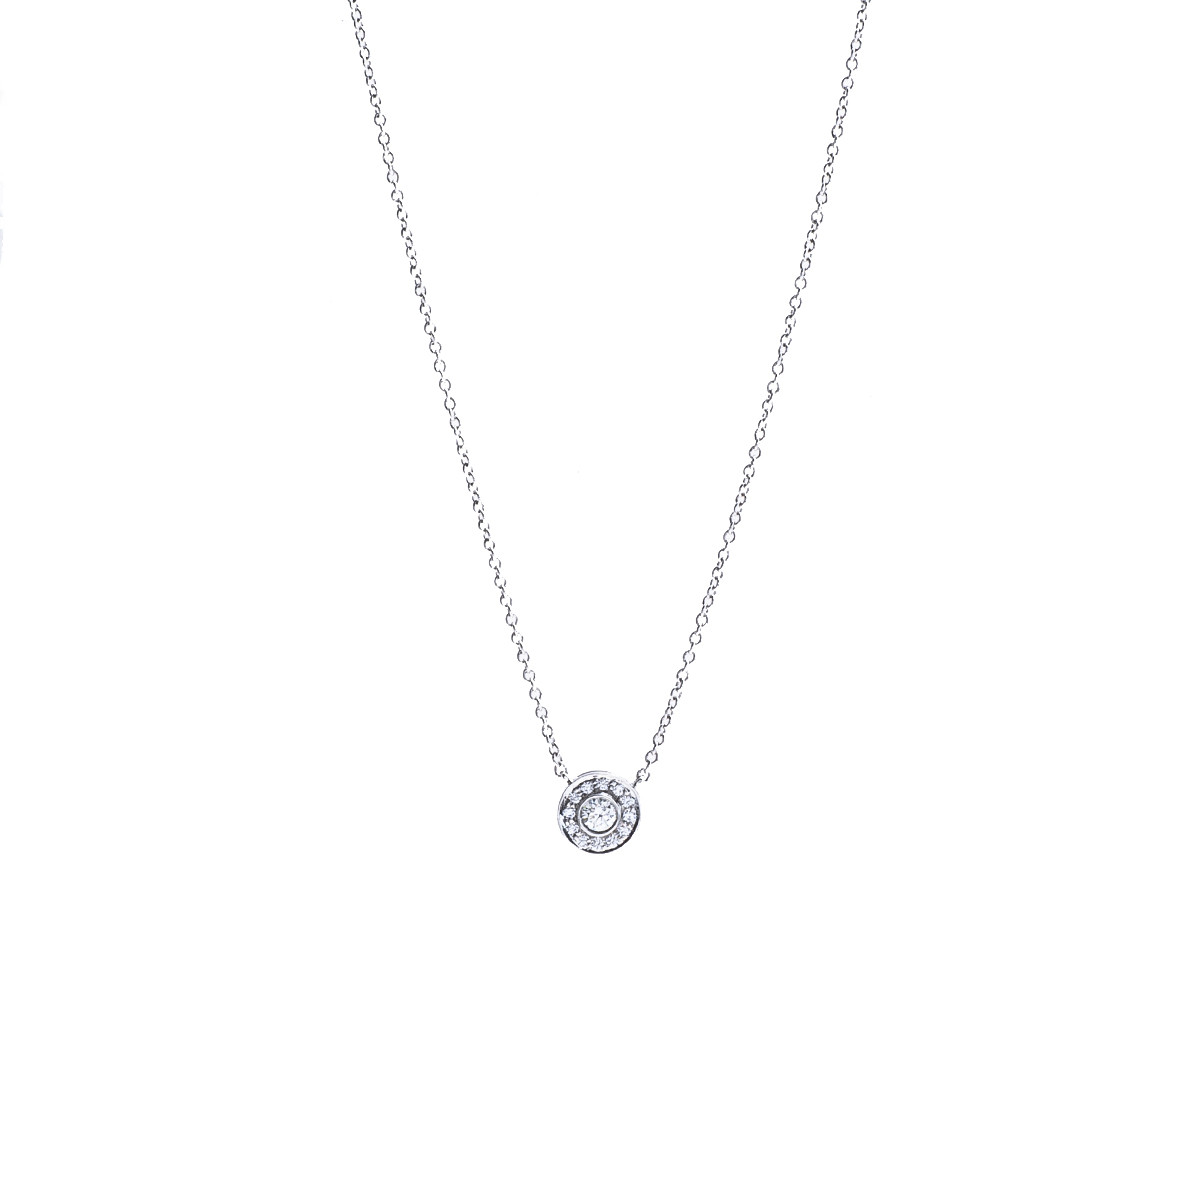 eed1e2392 Vintage Tiffany & Co. 0.26 CTW Diamond Halo Pendant Gallery Image